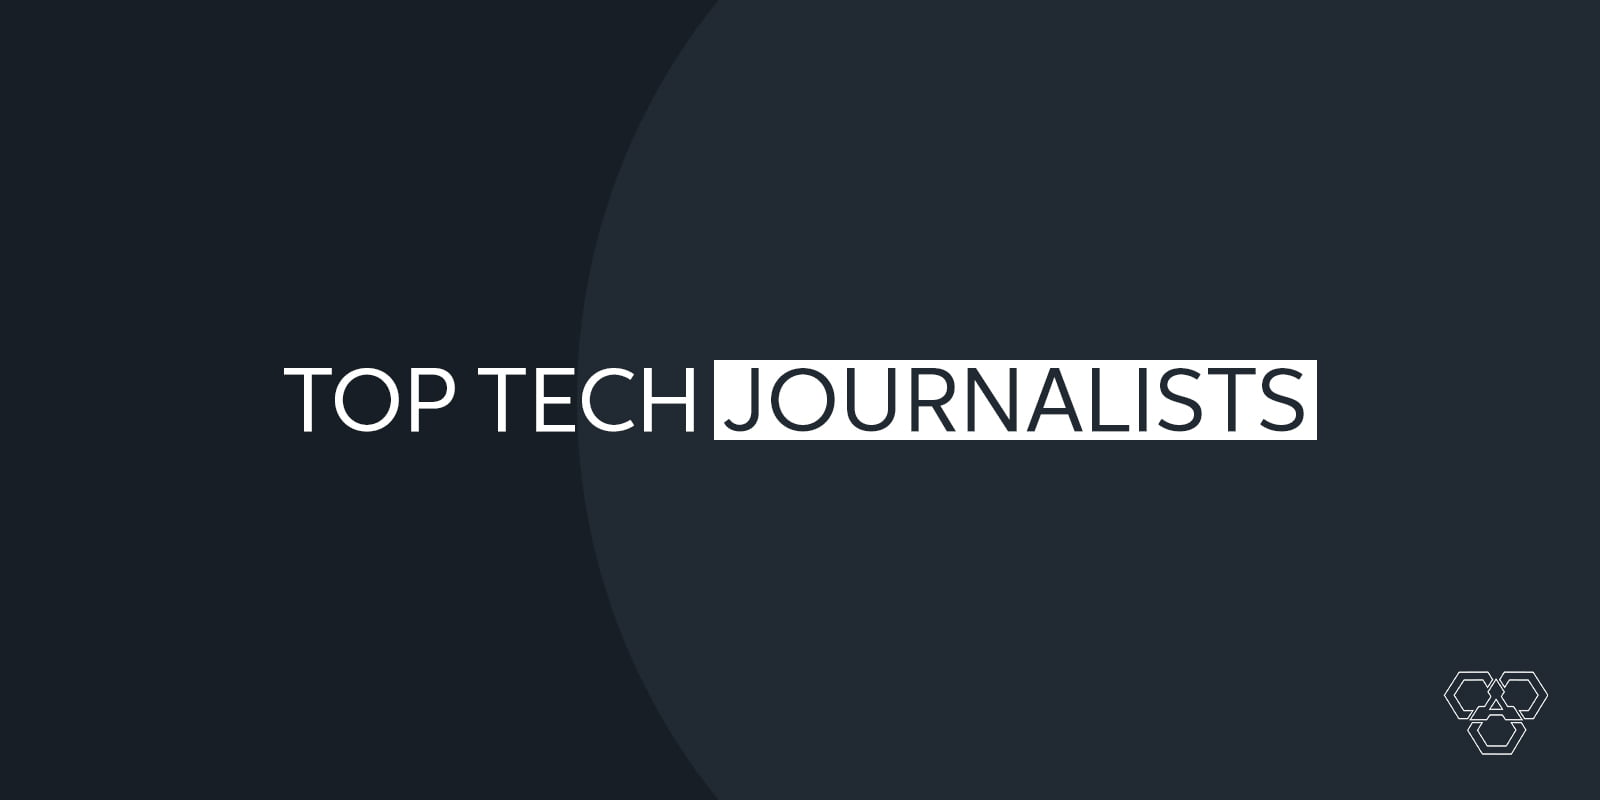 Top Tech Journalists